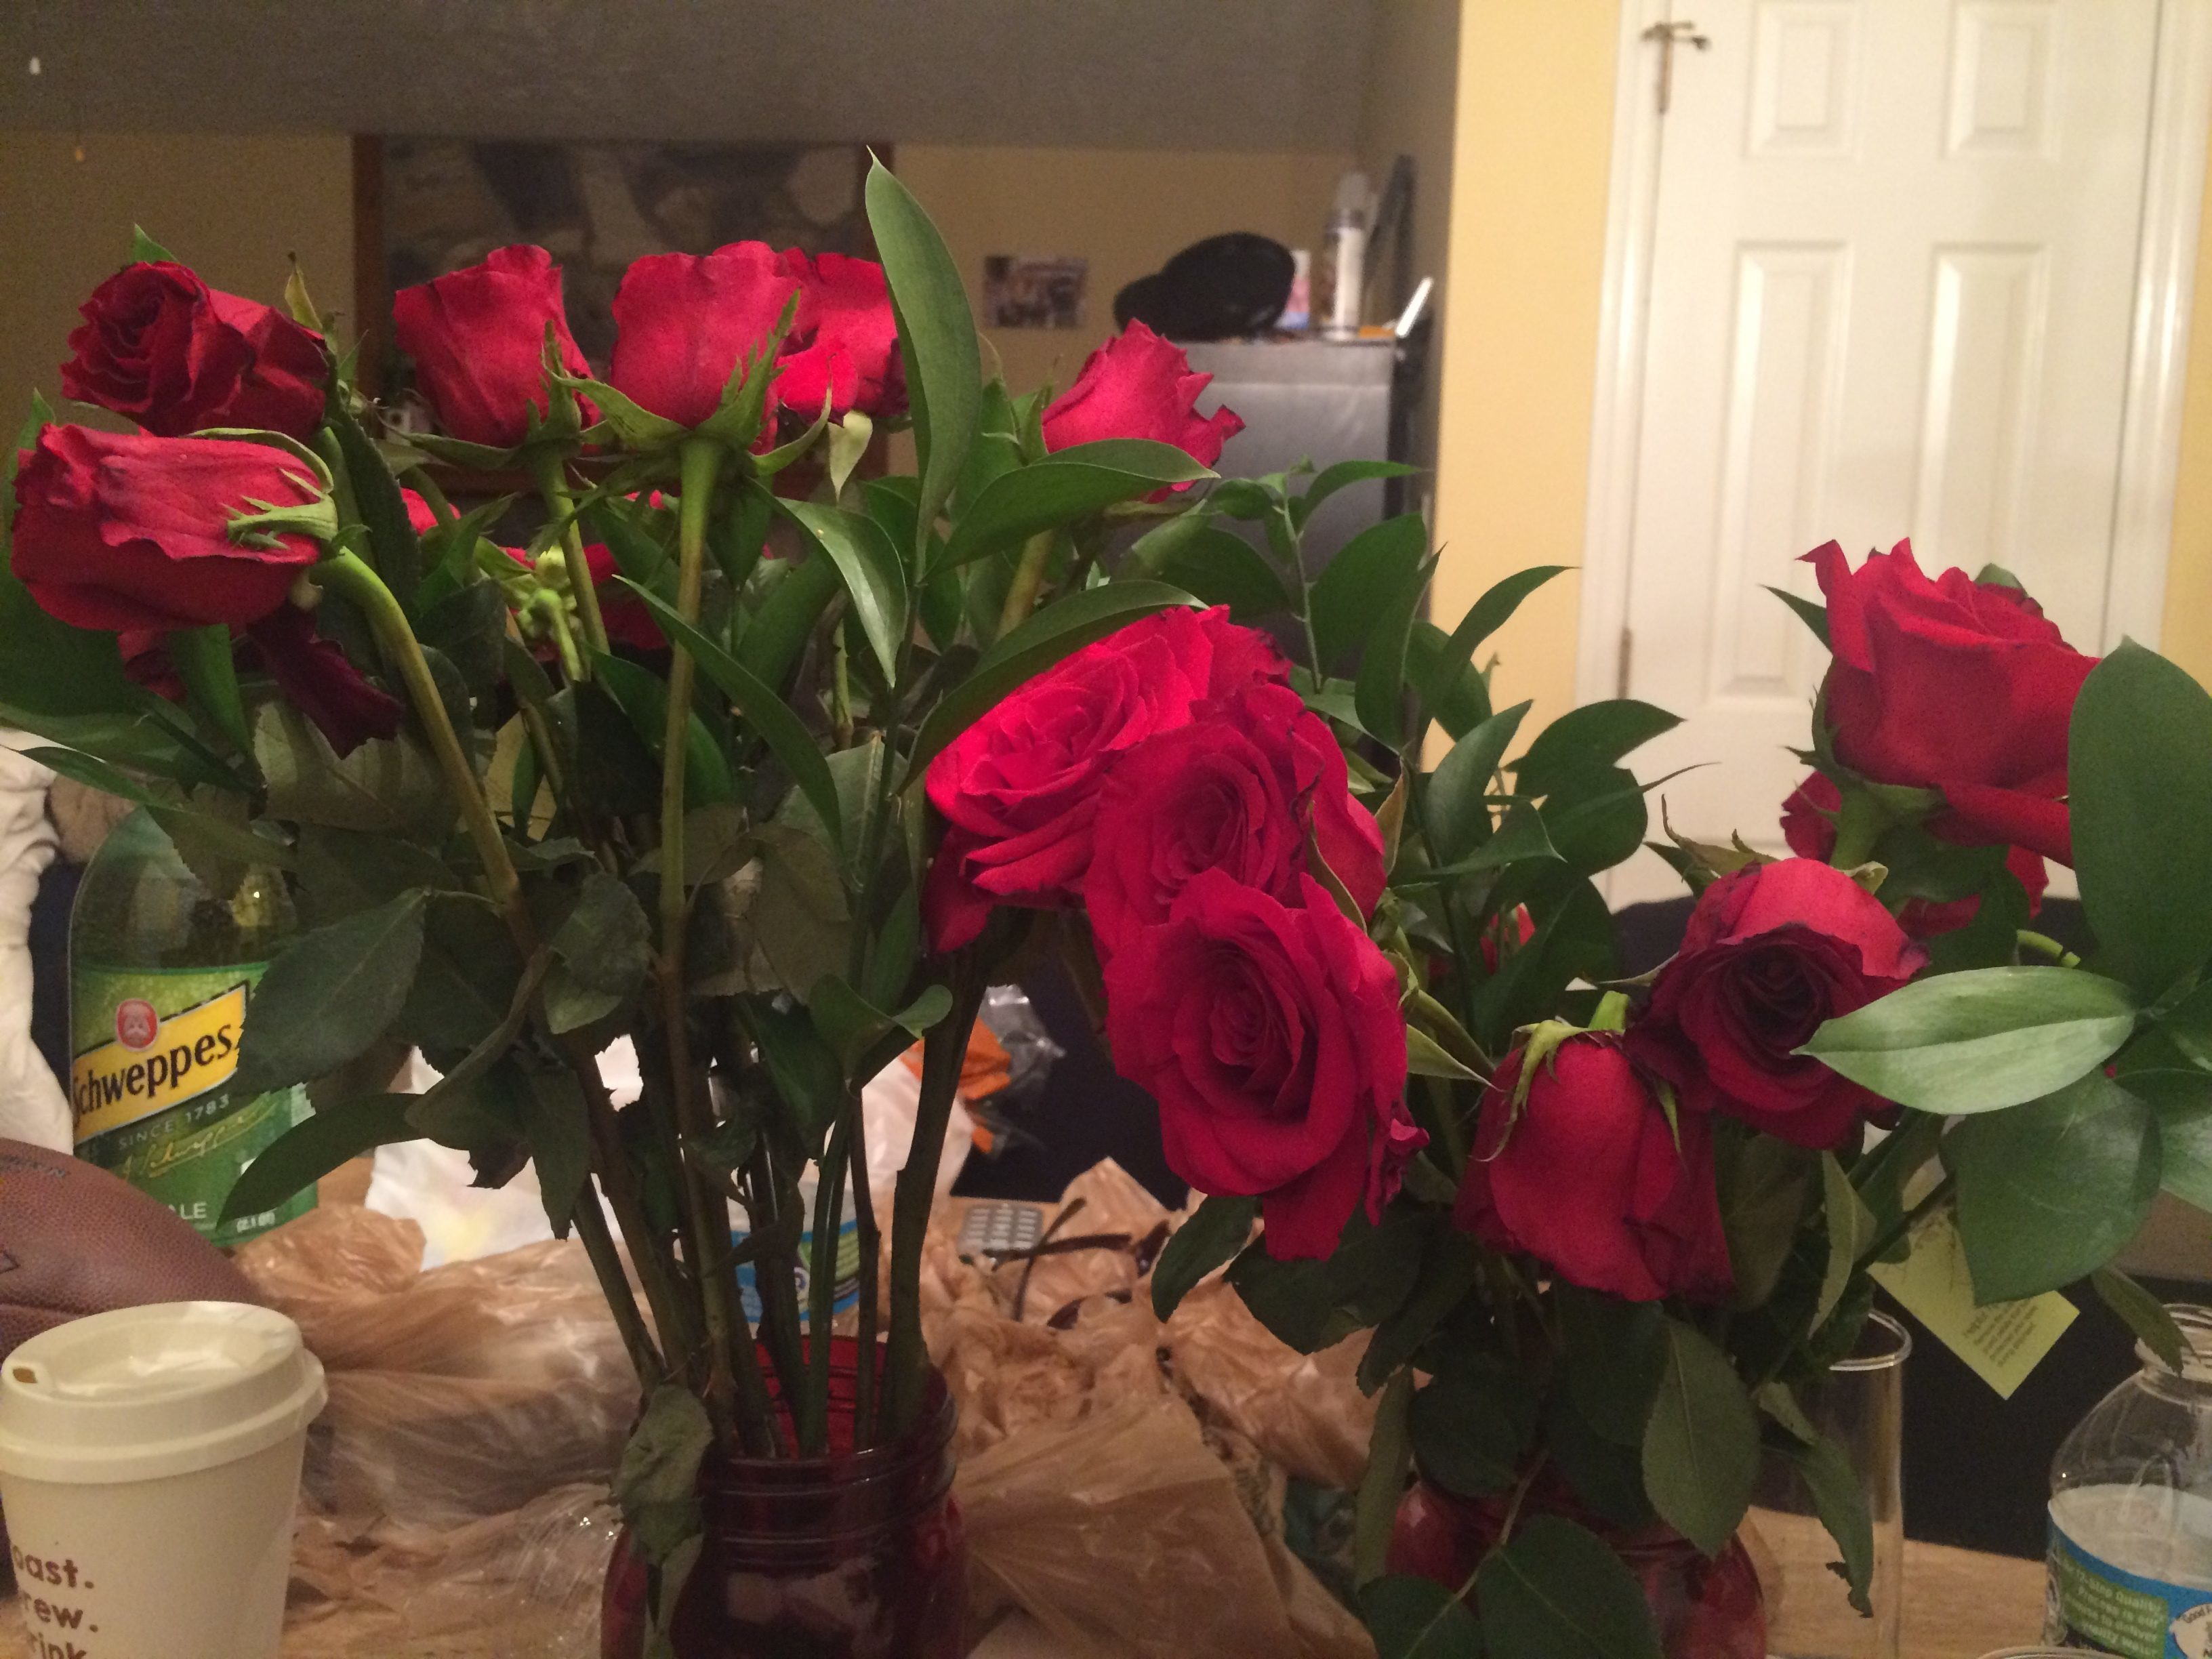 Top 809 plaints and Reviews about ProFlowers